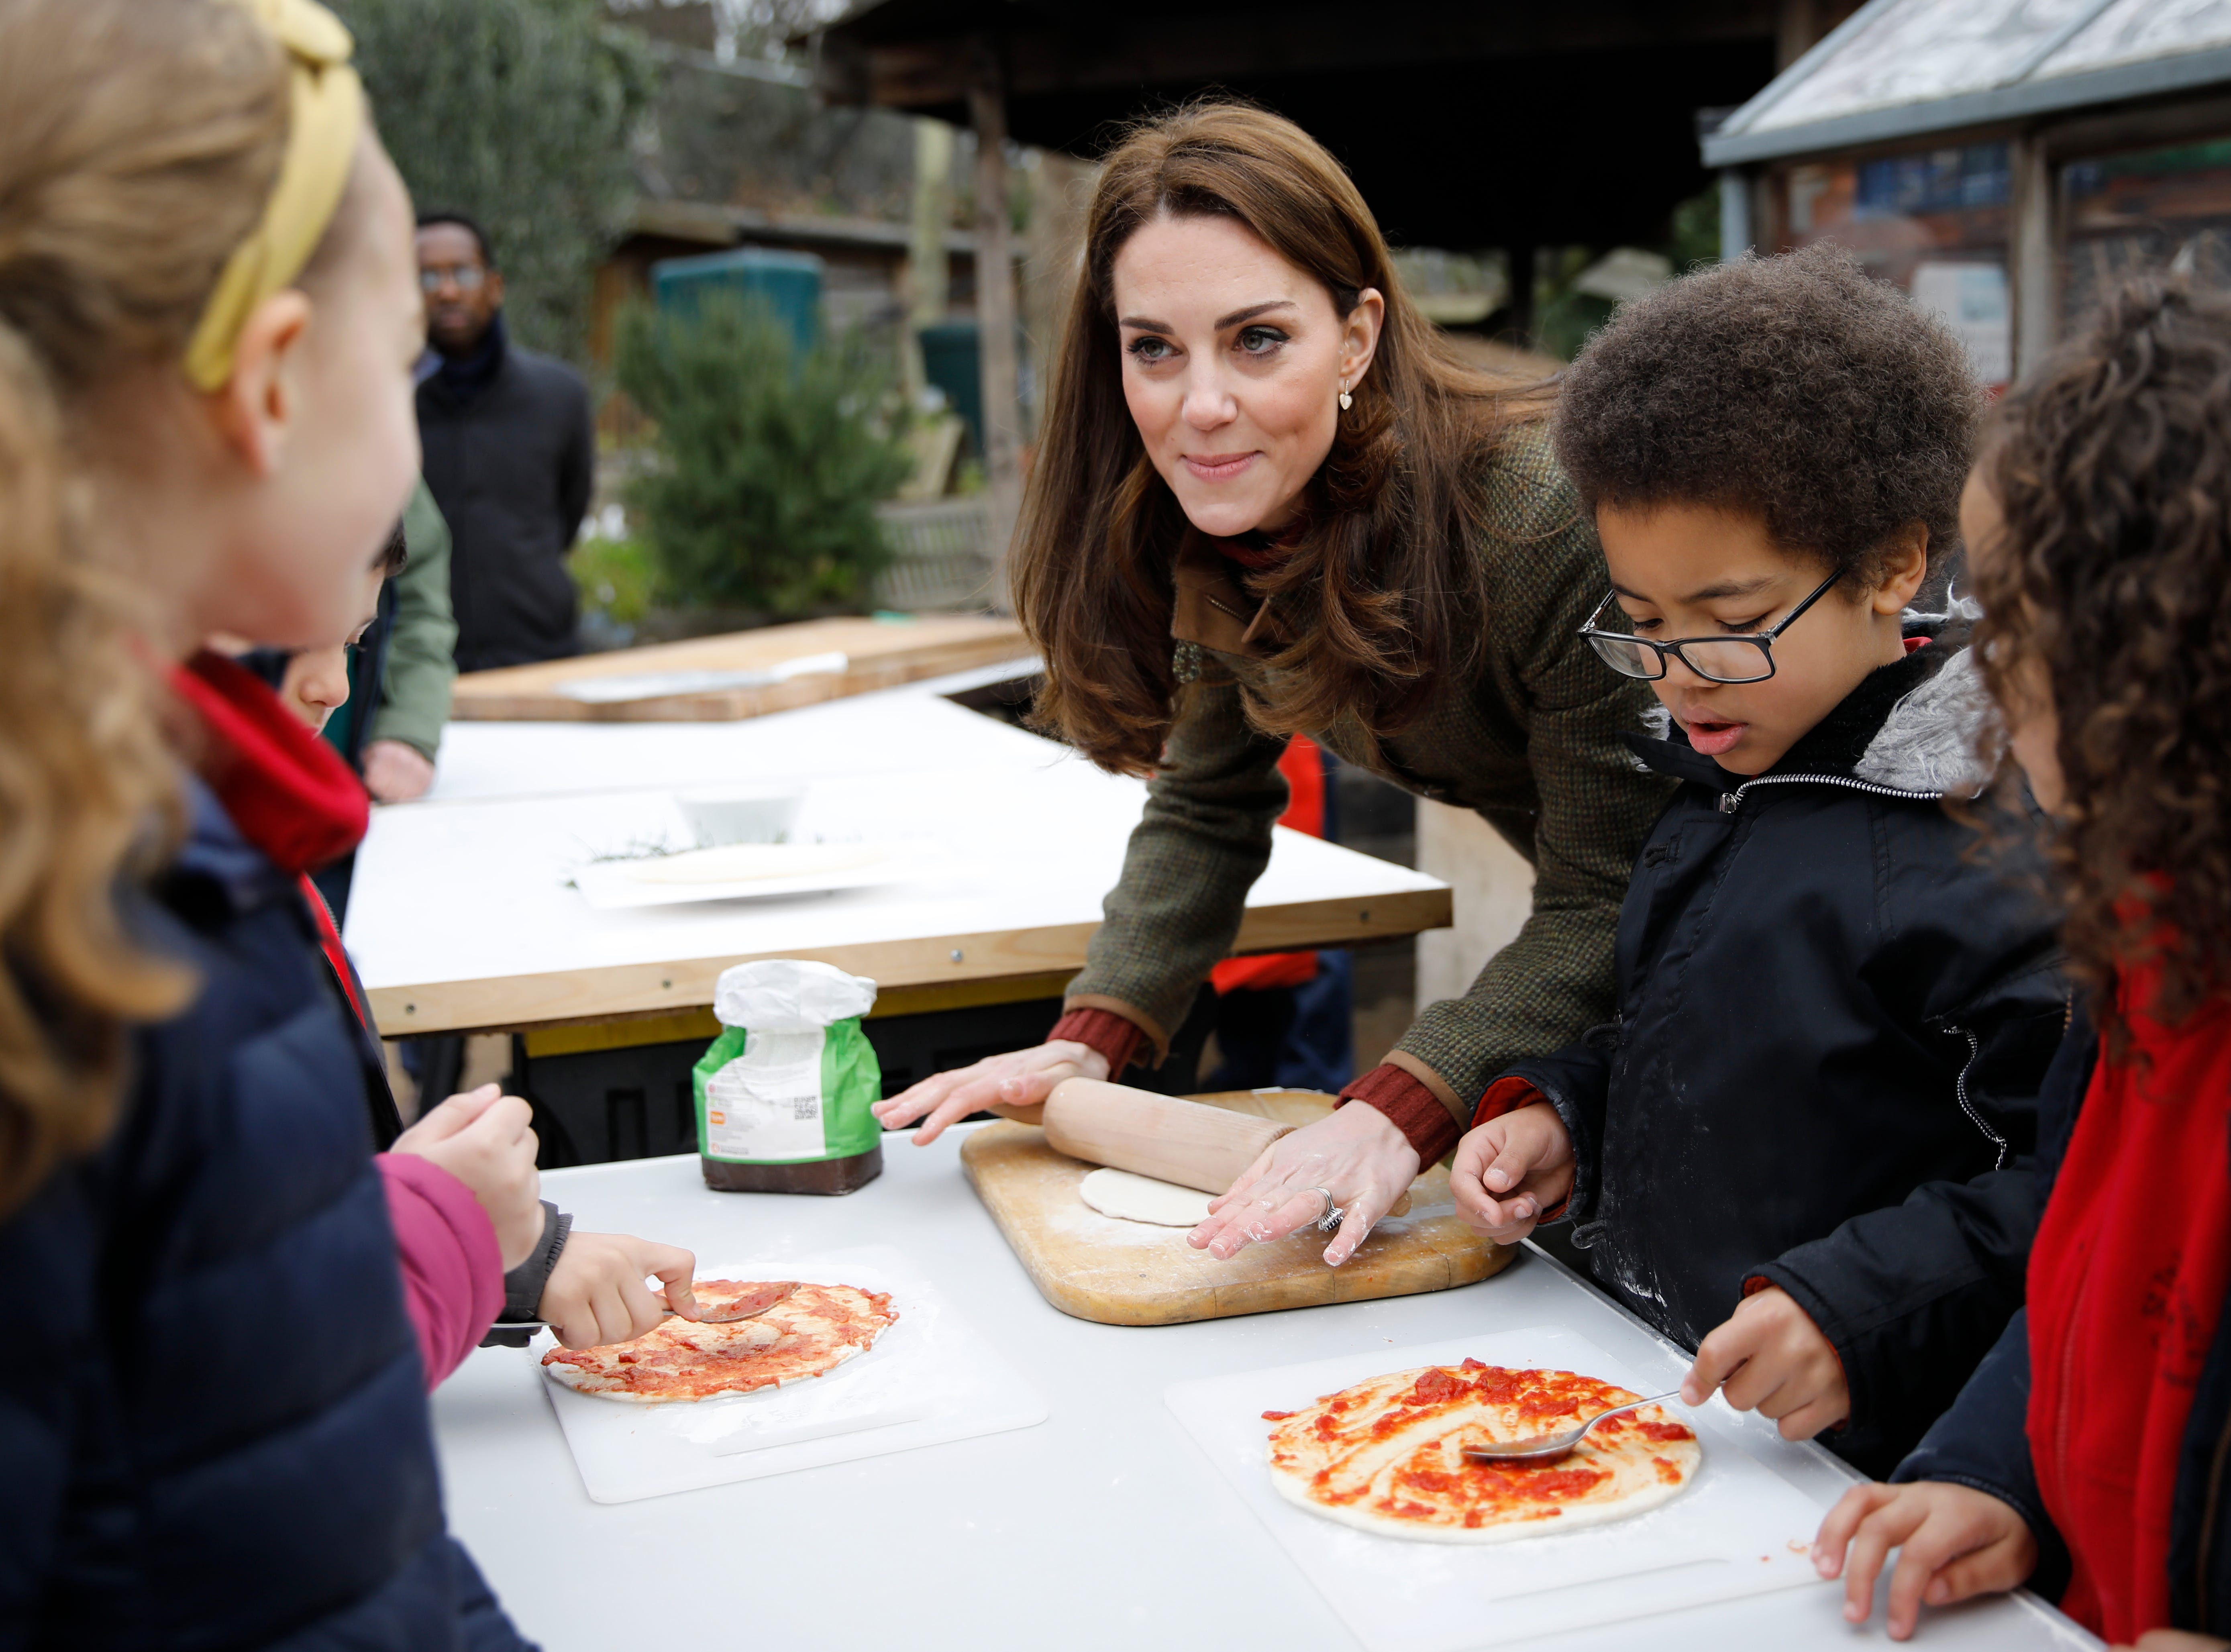 LONDON, ENGLAND - JANUARY 15:  Catherine, Duchess of Cambridge speaks with children and helps makes pizza as she visits Islington Community Garden on January 15, 2019 in London, England. (Photo by Tolga Akmen - WPA Pool/Getty Images) ORG XMIT: 775282491 ORIG FILE ID: 1083117696